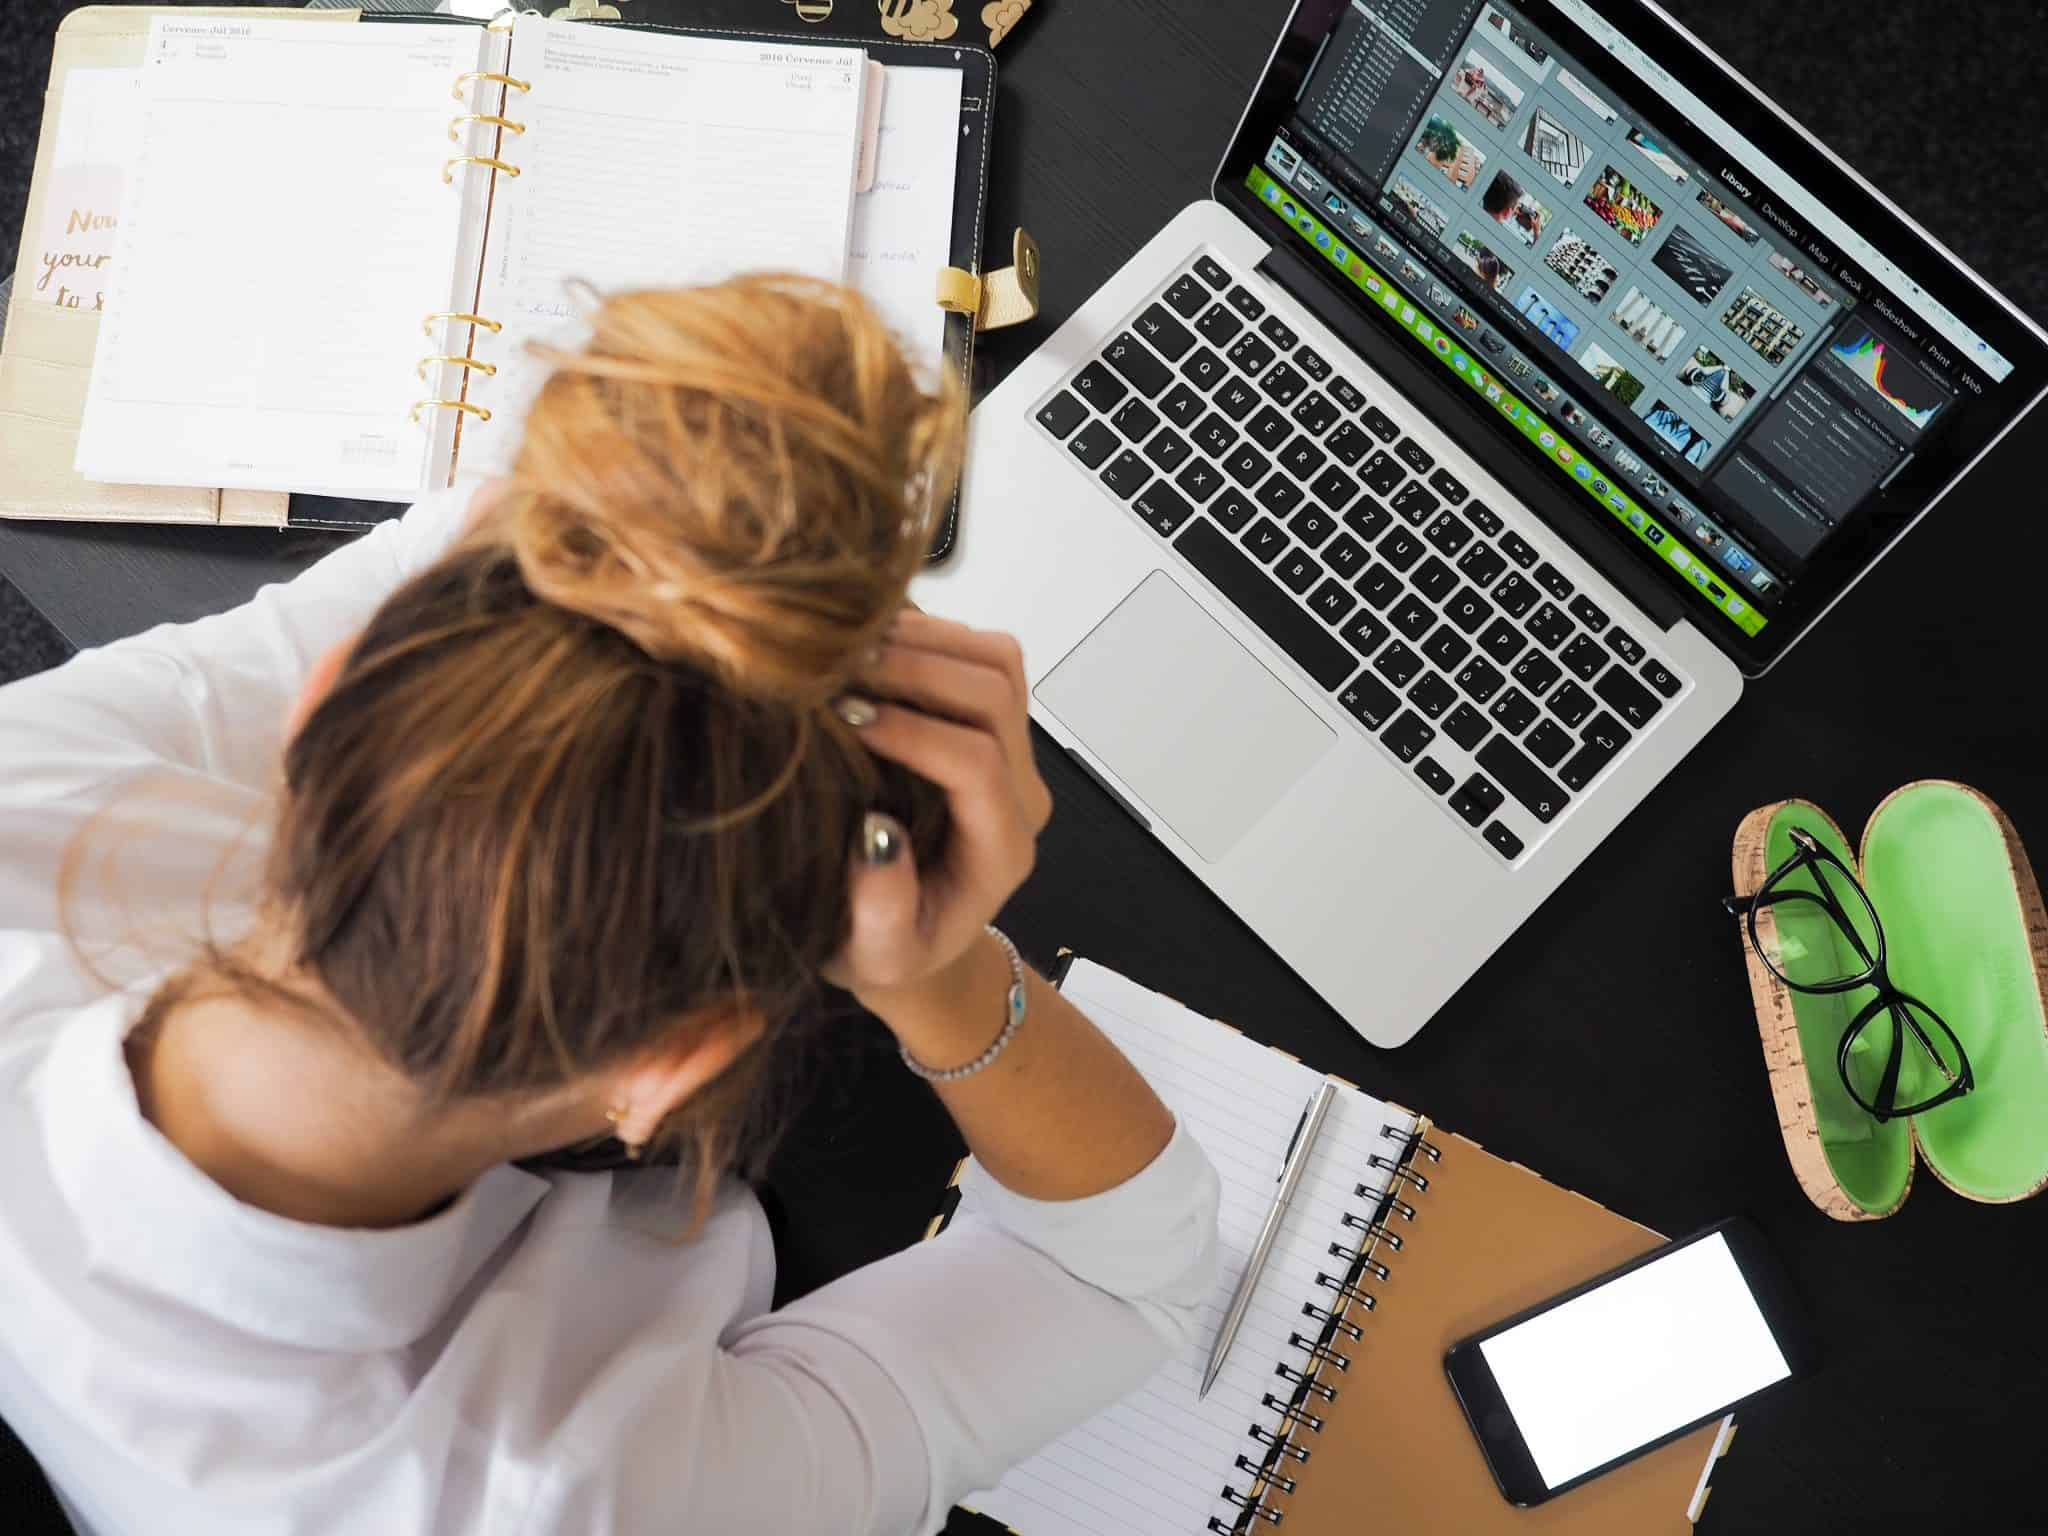 can stress cause gallstones